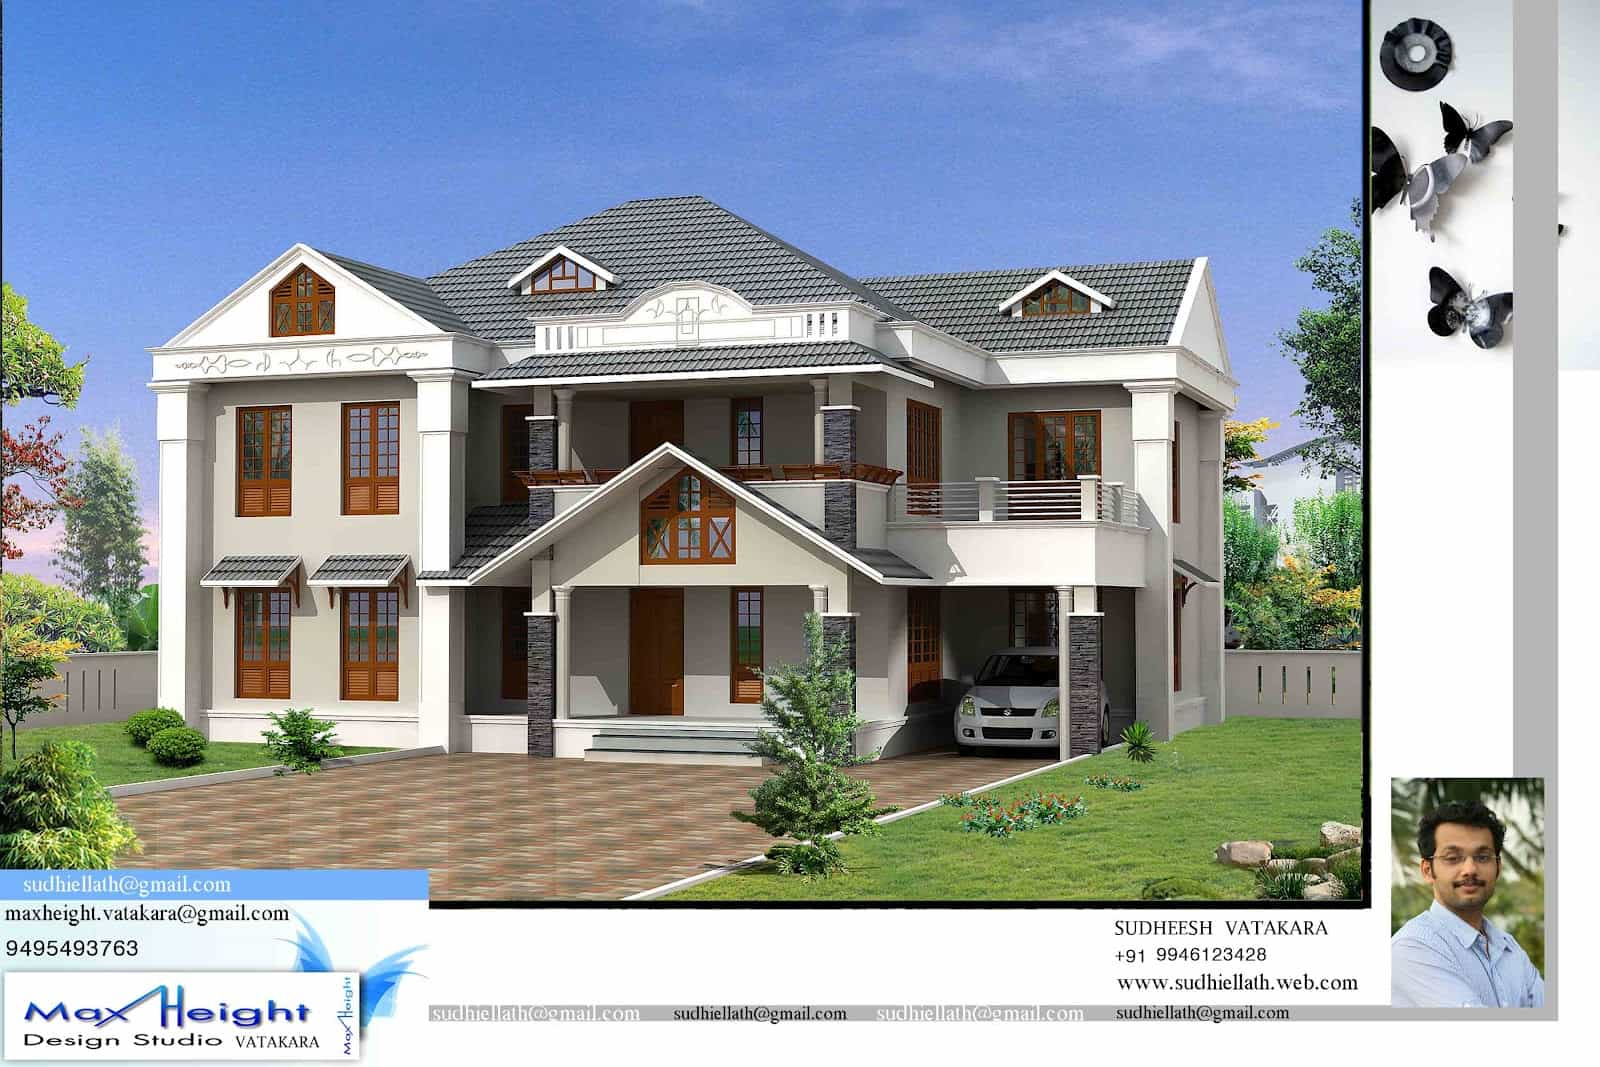 Single storey kerala house model with kerala house plans for New home designs kerala